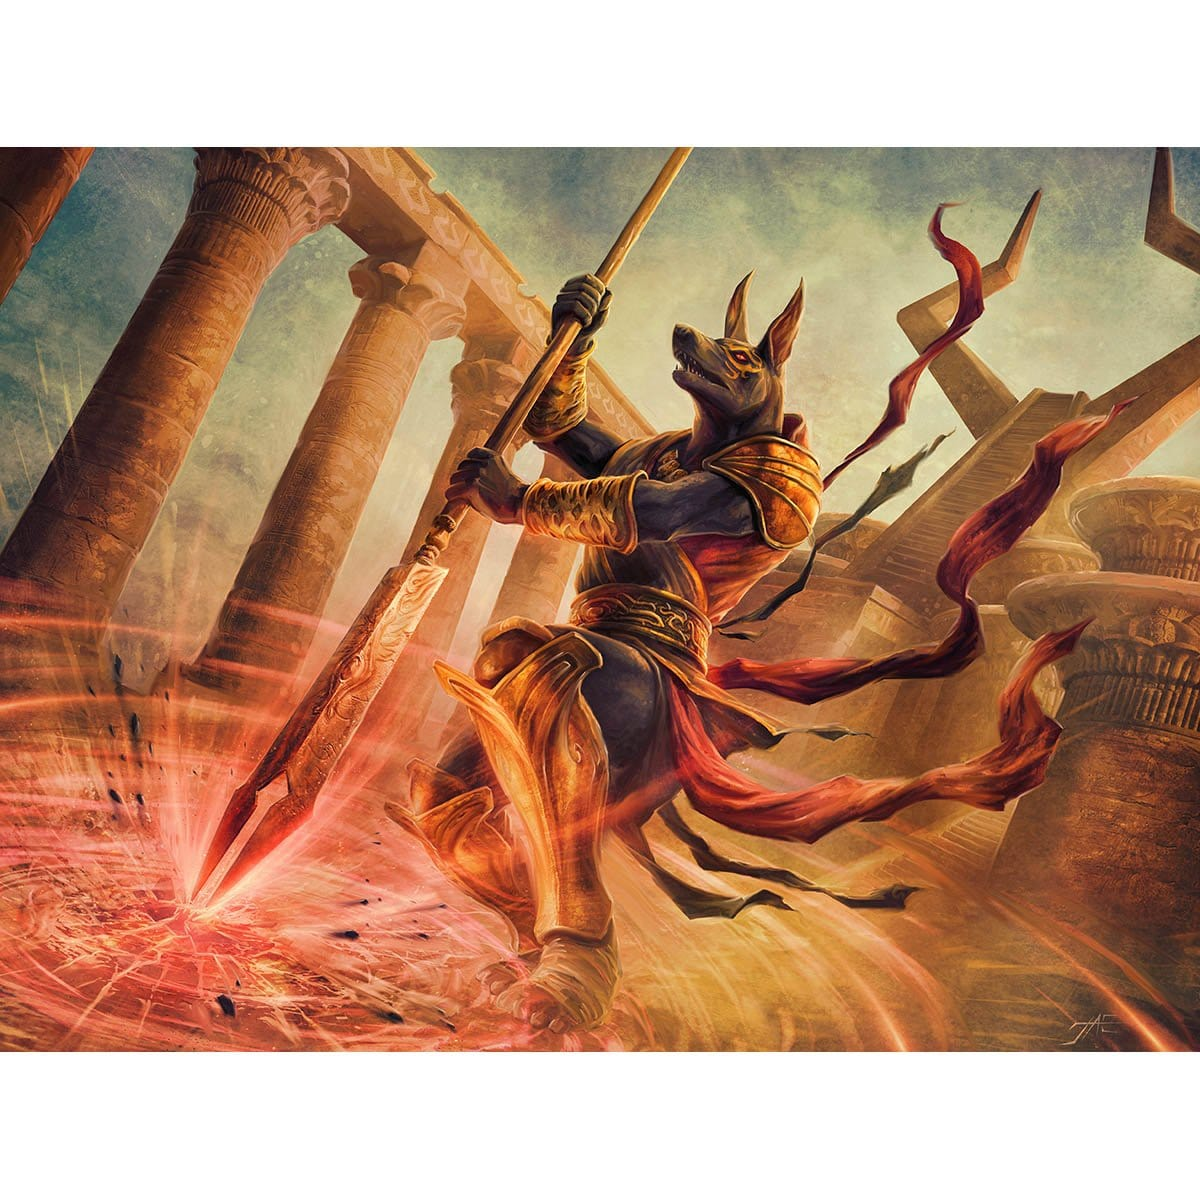 Earthshaker Khenra Print - Print - Original Magic Art - Accessories for Magic the Gathering and other card games